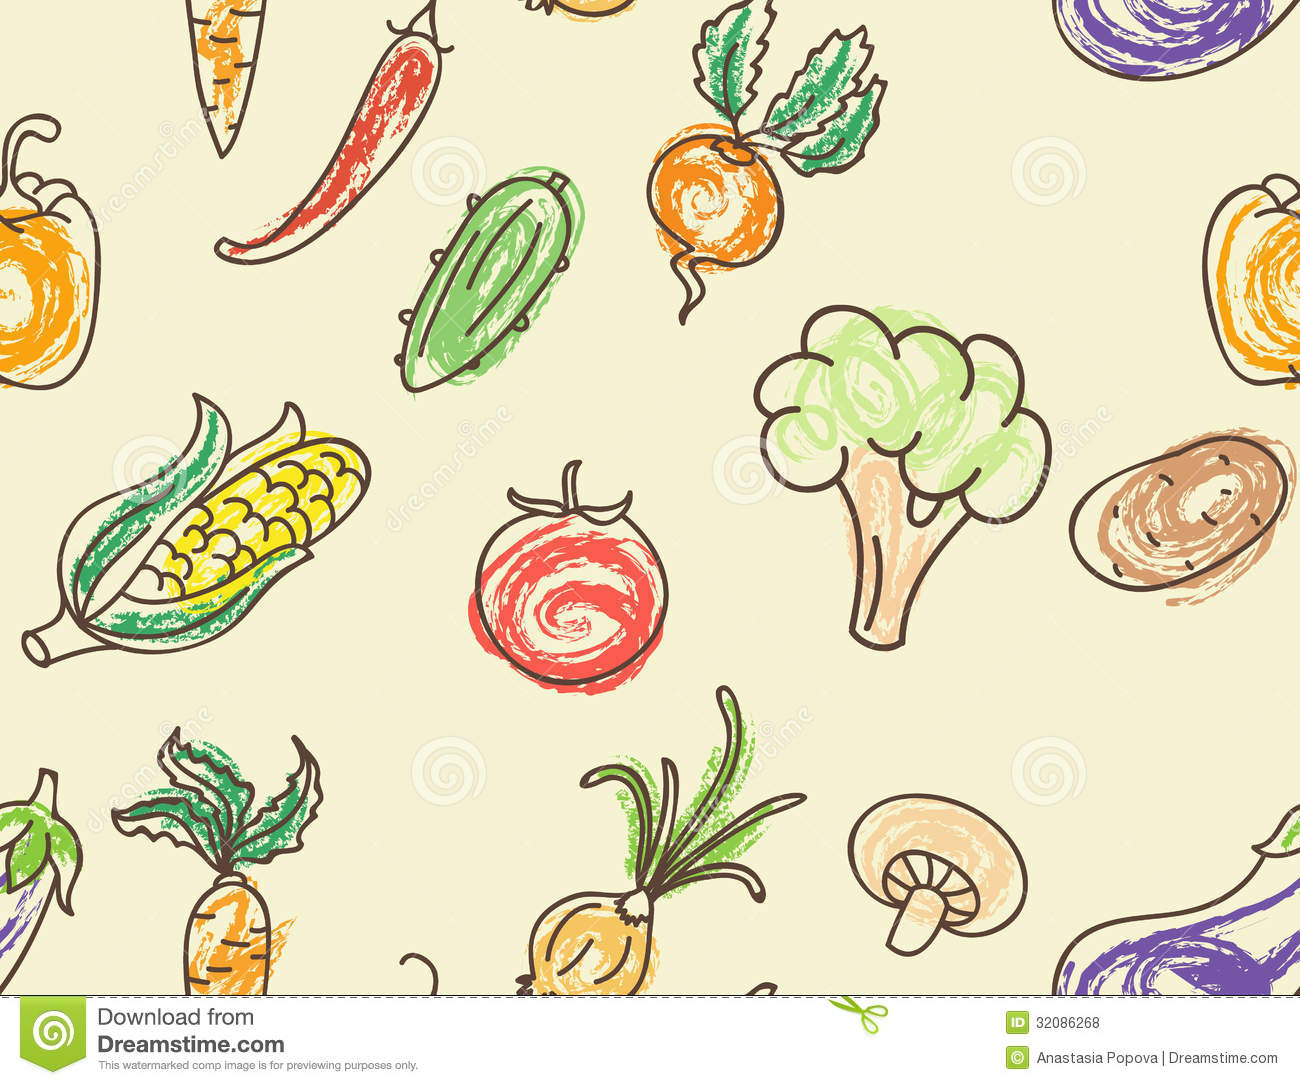 Vegetable pattern - photo#14